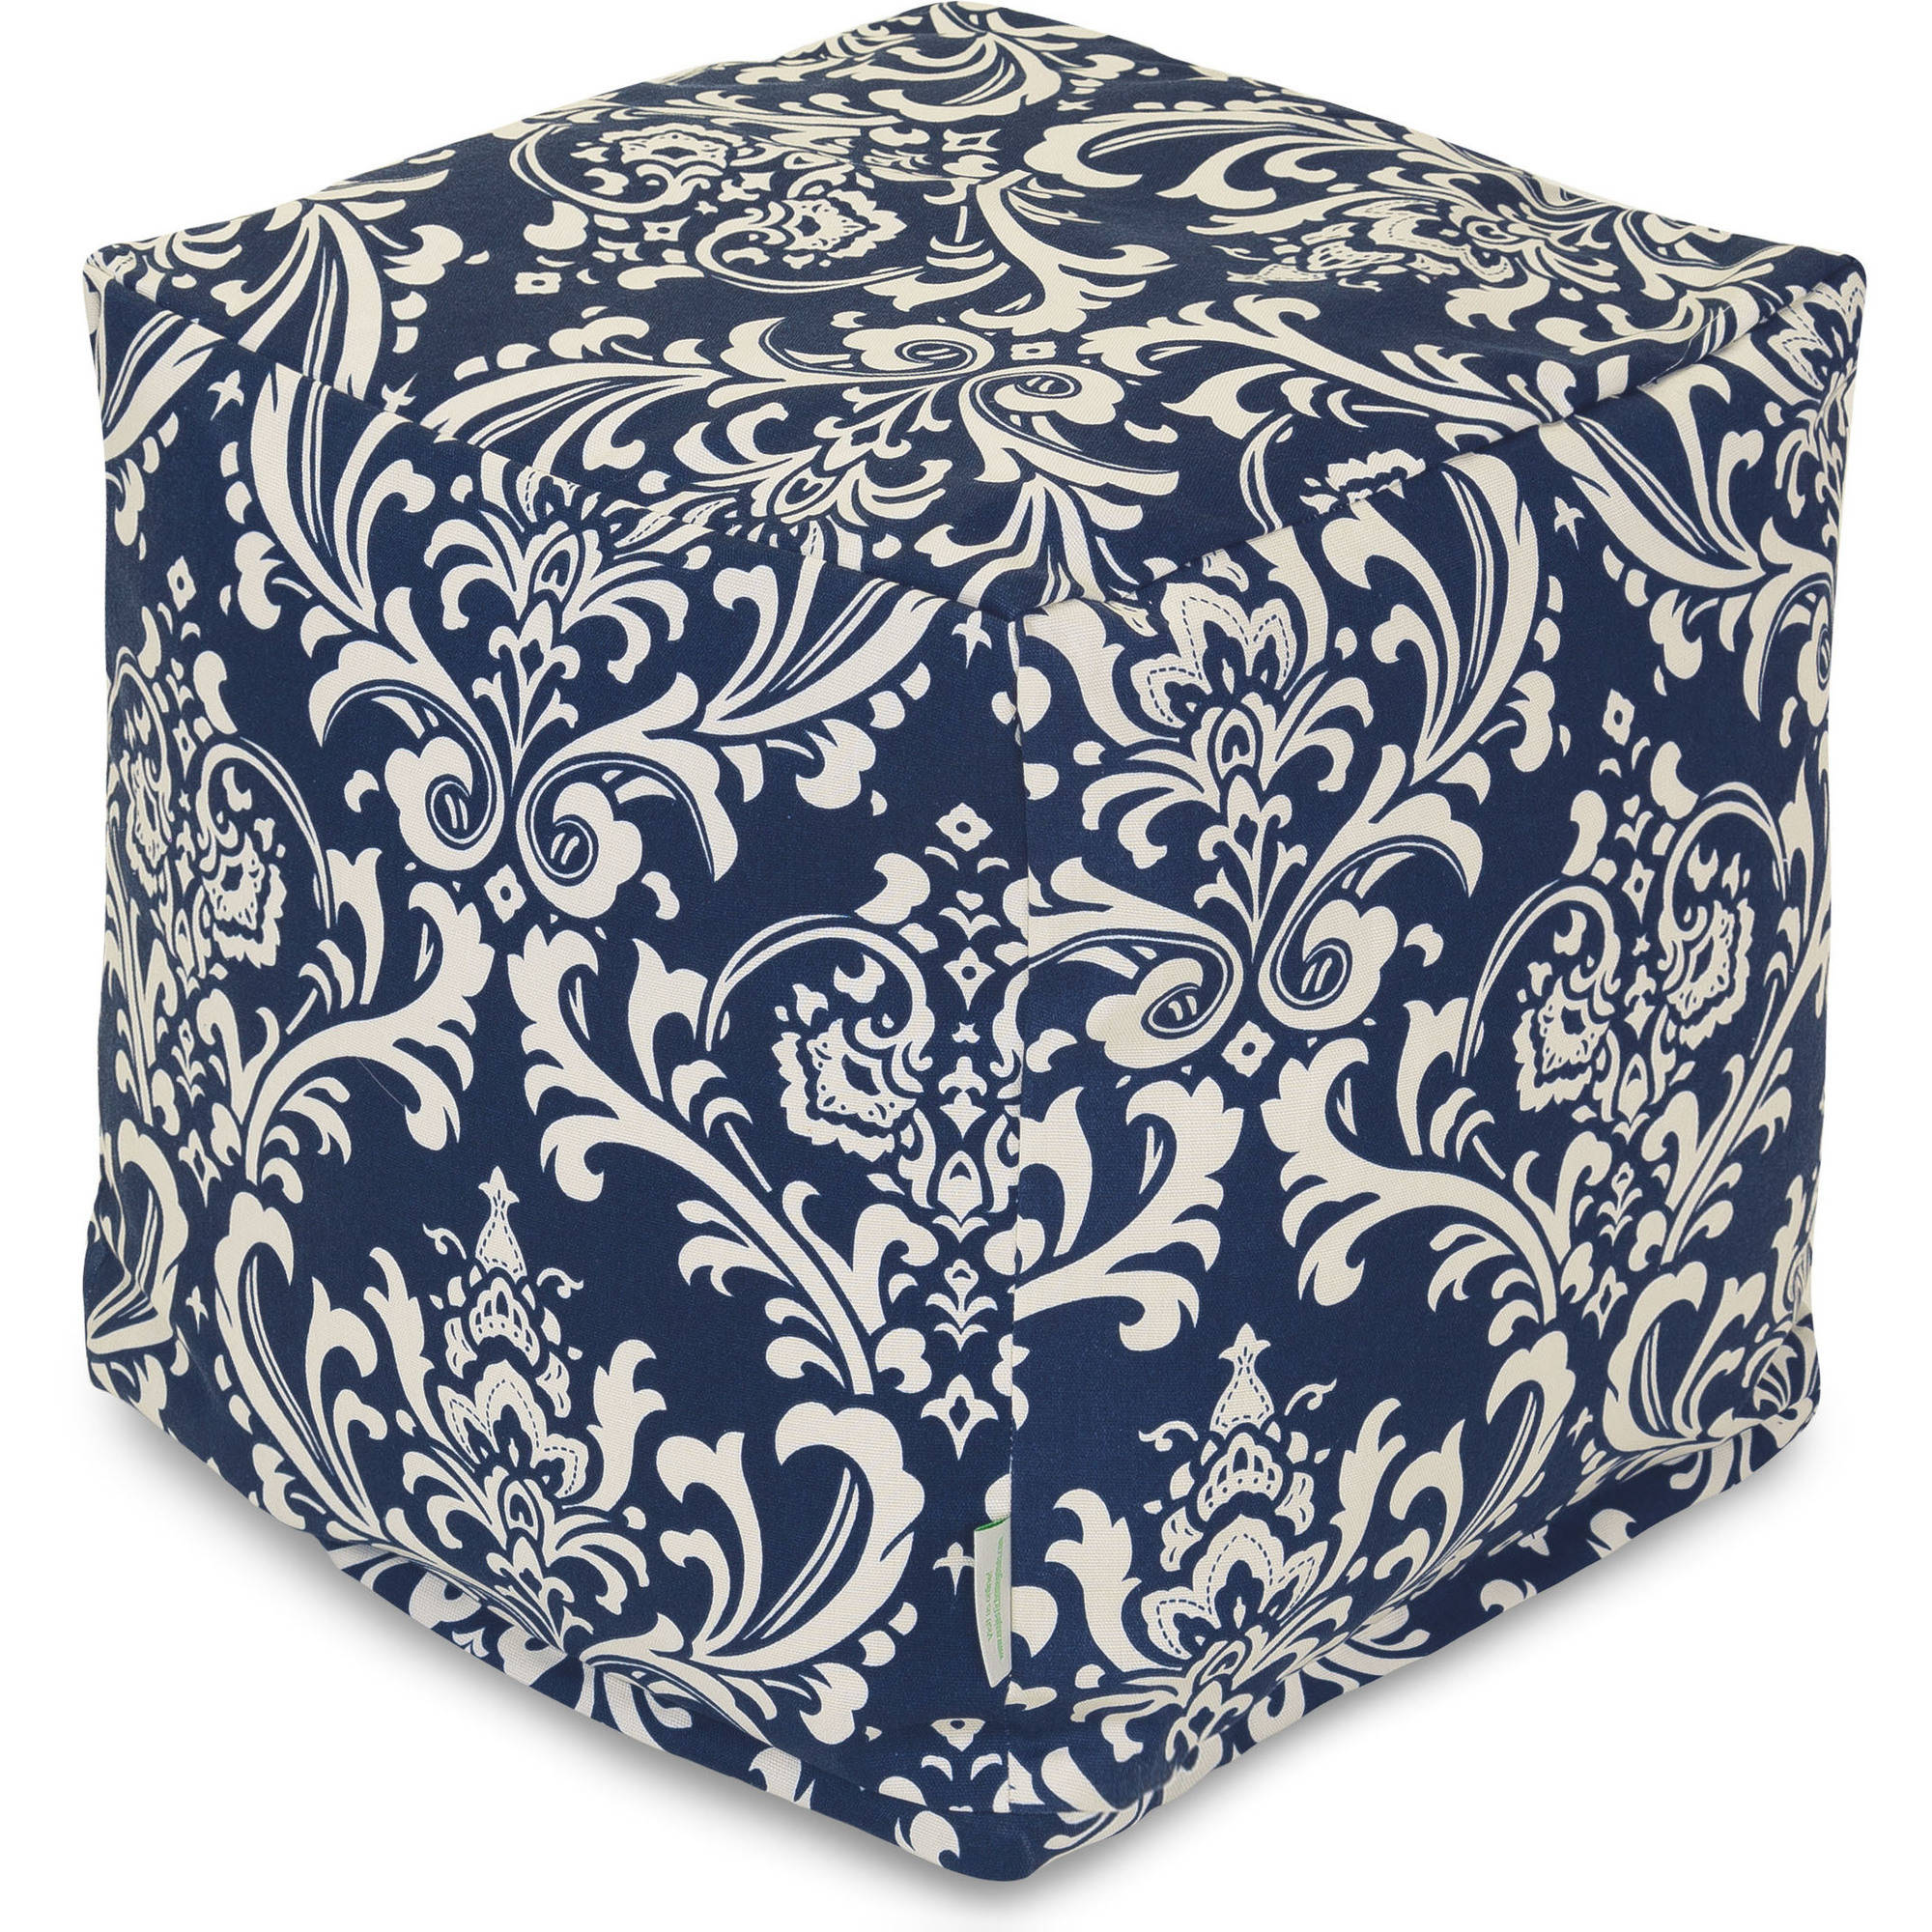 Majestic Home Goods Navy Blue French Quarter Bean Bag Cube, Indoor/Outdoor